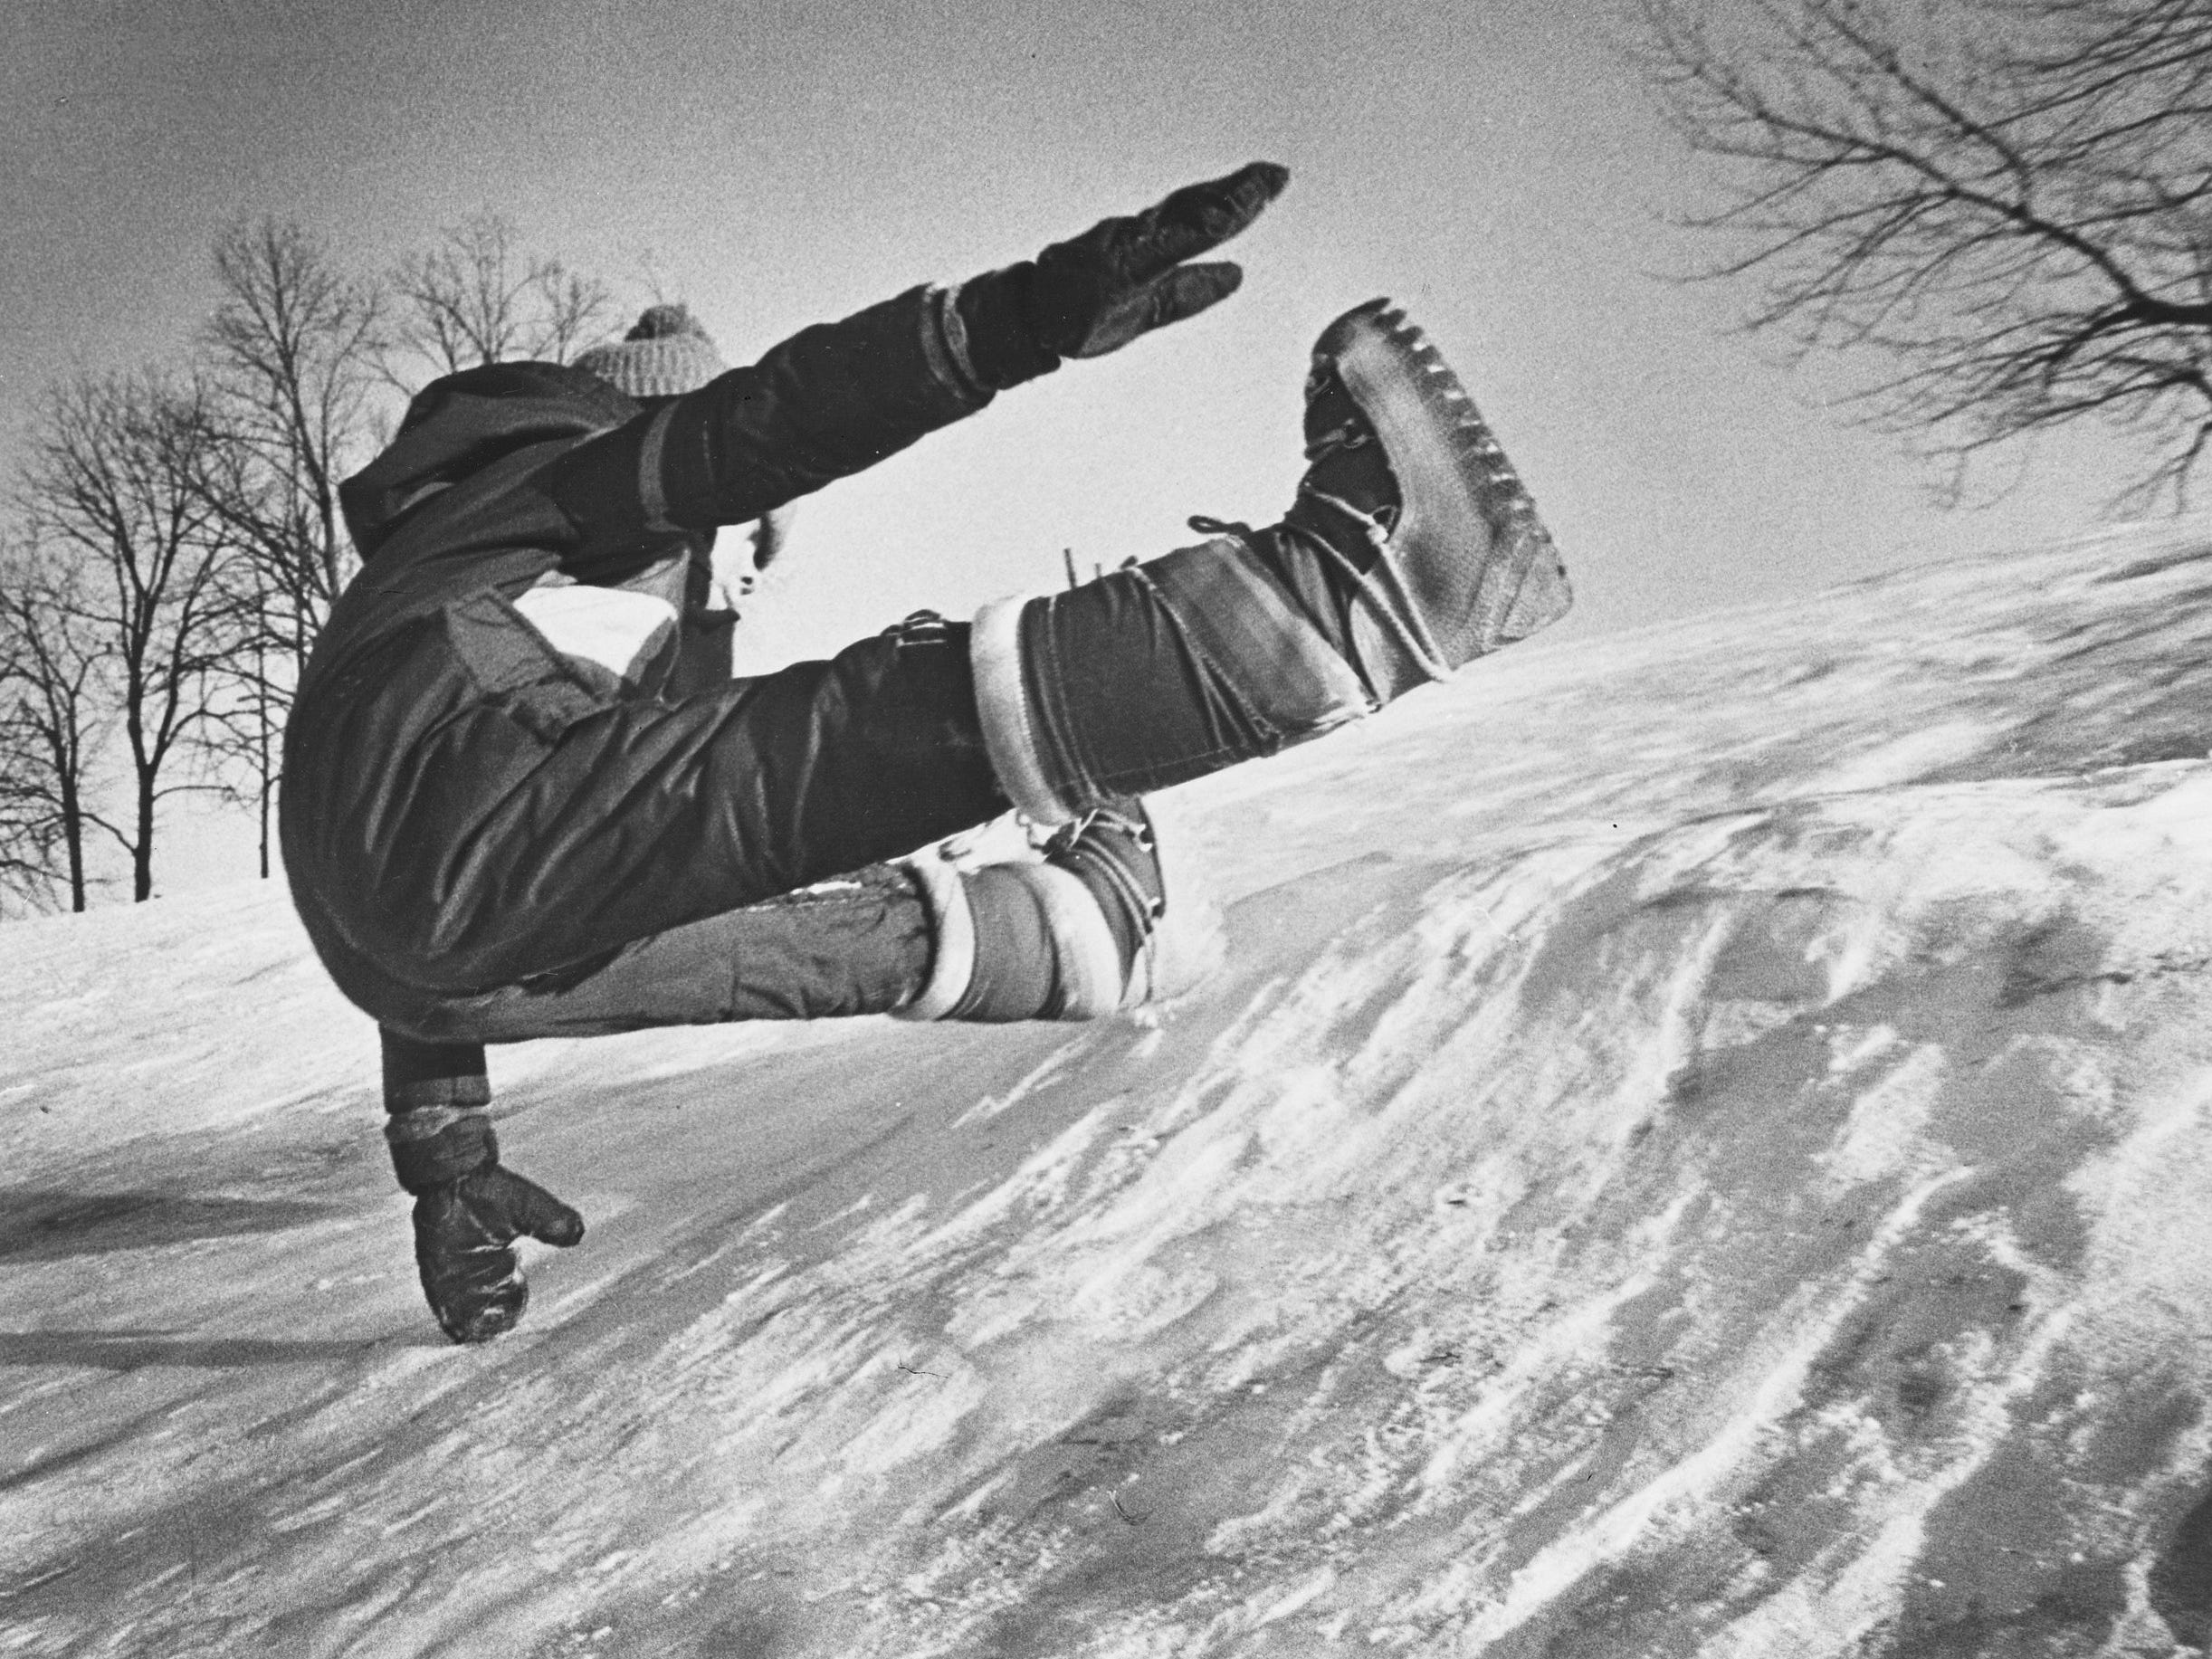 A child flies down a snow-covered hill in Menomonee Falls, near MacArthur Drive along the Menomonee River Parkway, after the Milwaukee area began digging out from under its second major snowstorm in a month in January 1979. This photo was published in the Jan. 18, 1979, Milwaukee Journal.